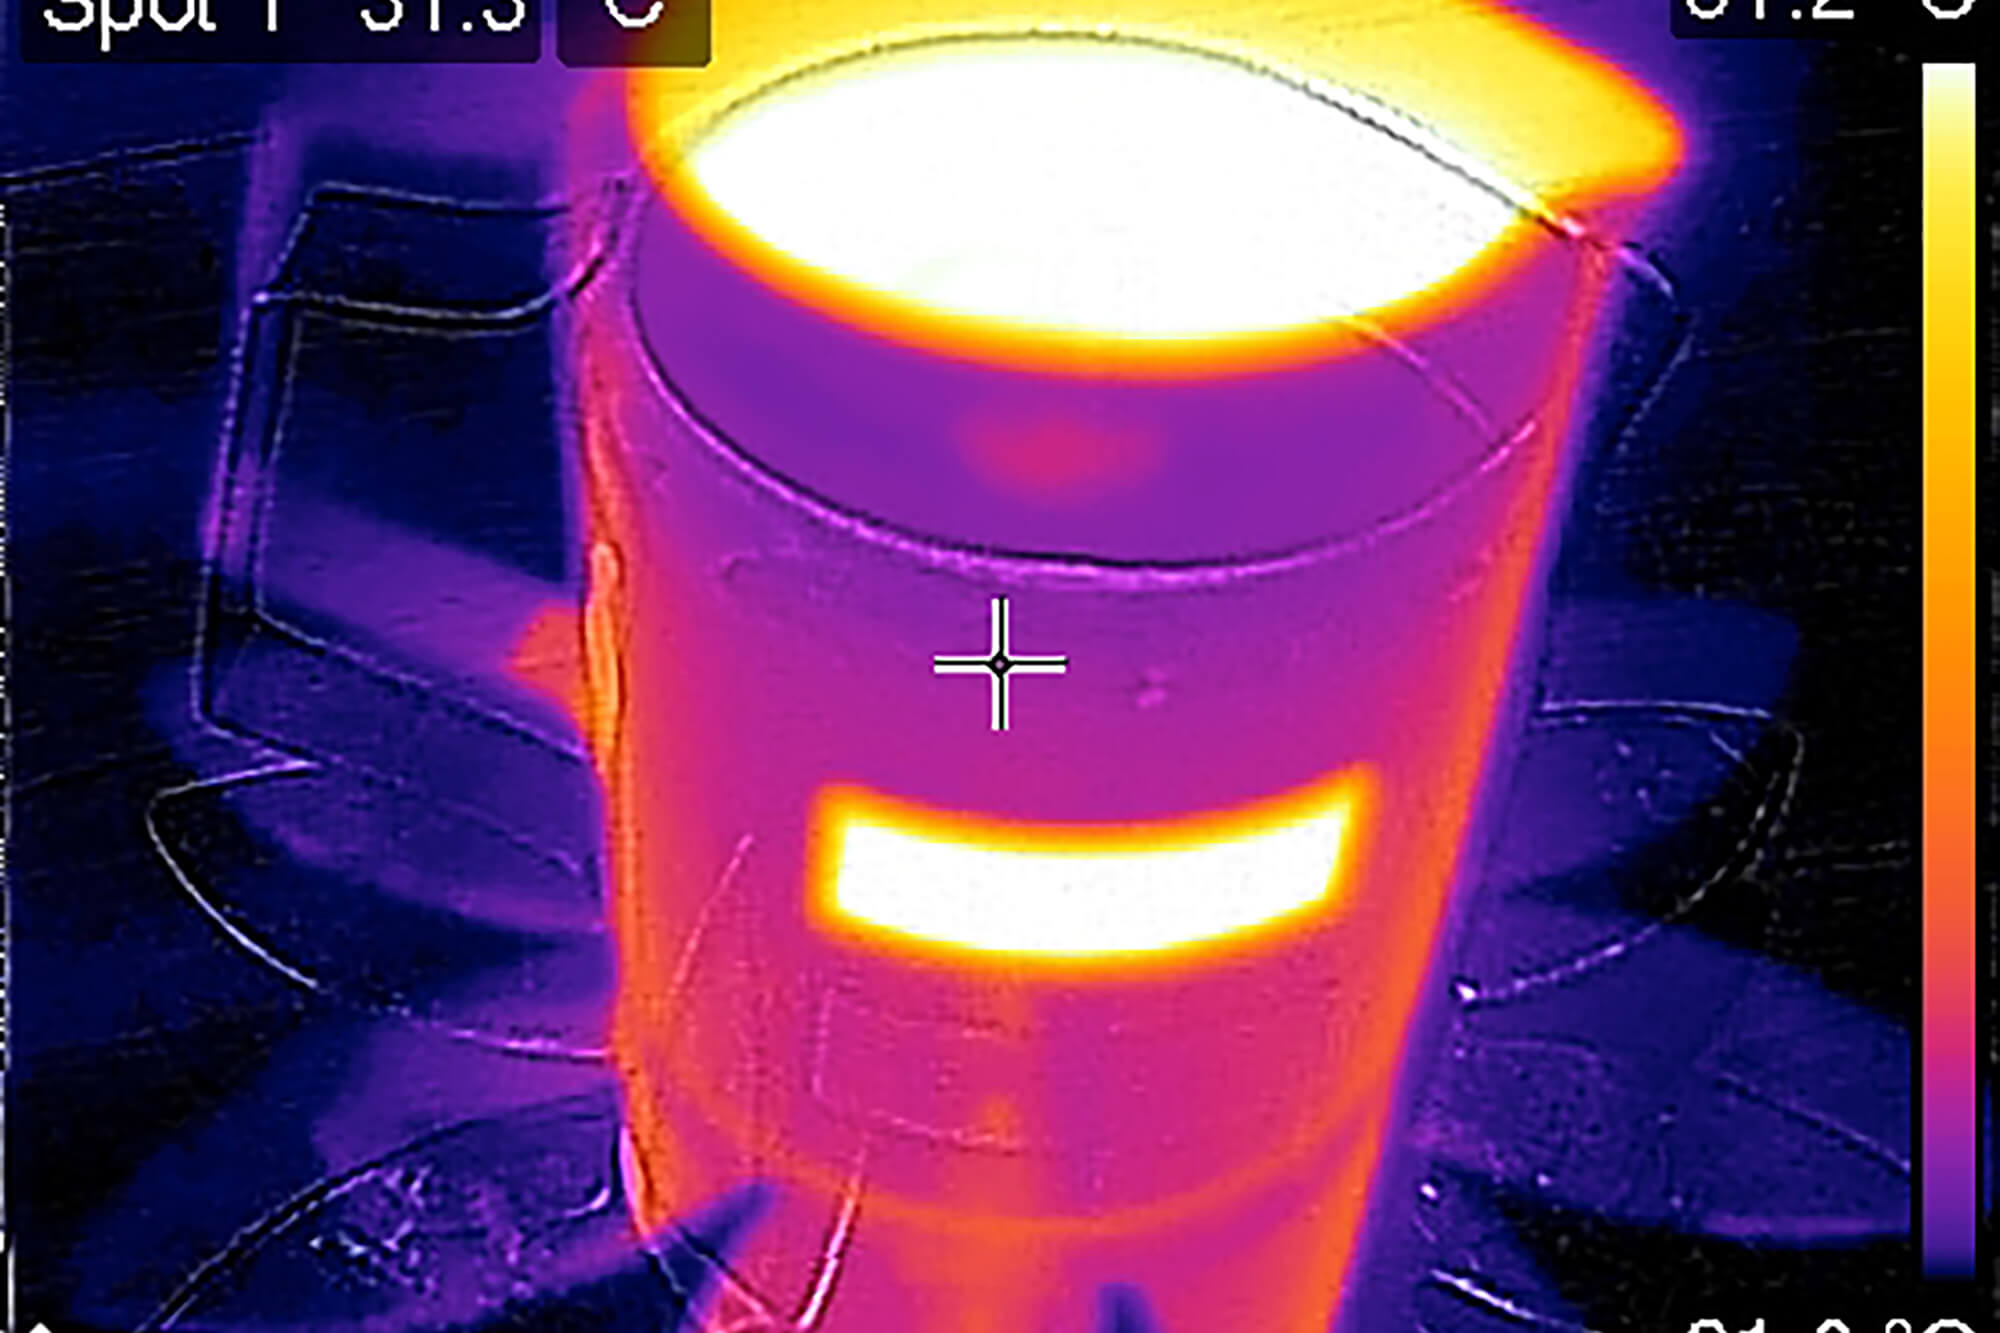 A thermal image of some warm milk in an insulated jug. The milk is at a high temperature of over 80 degrees and the body of the jug is at a relatively lower temperature, around 30 degrees.